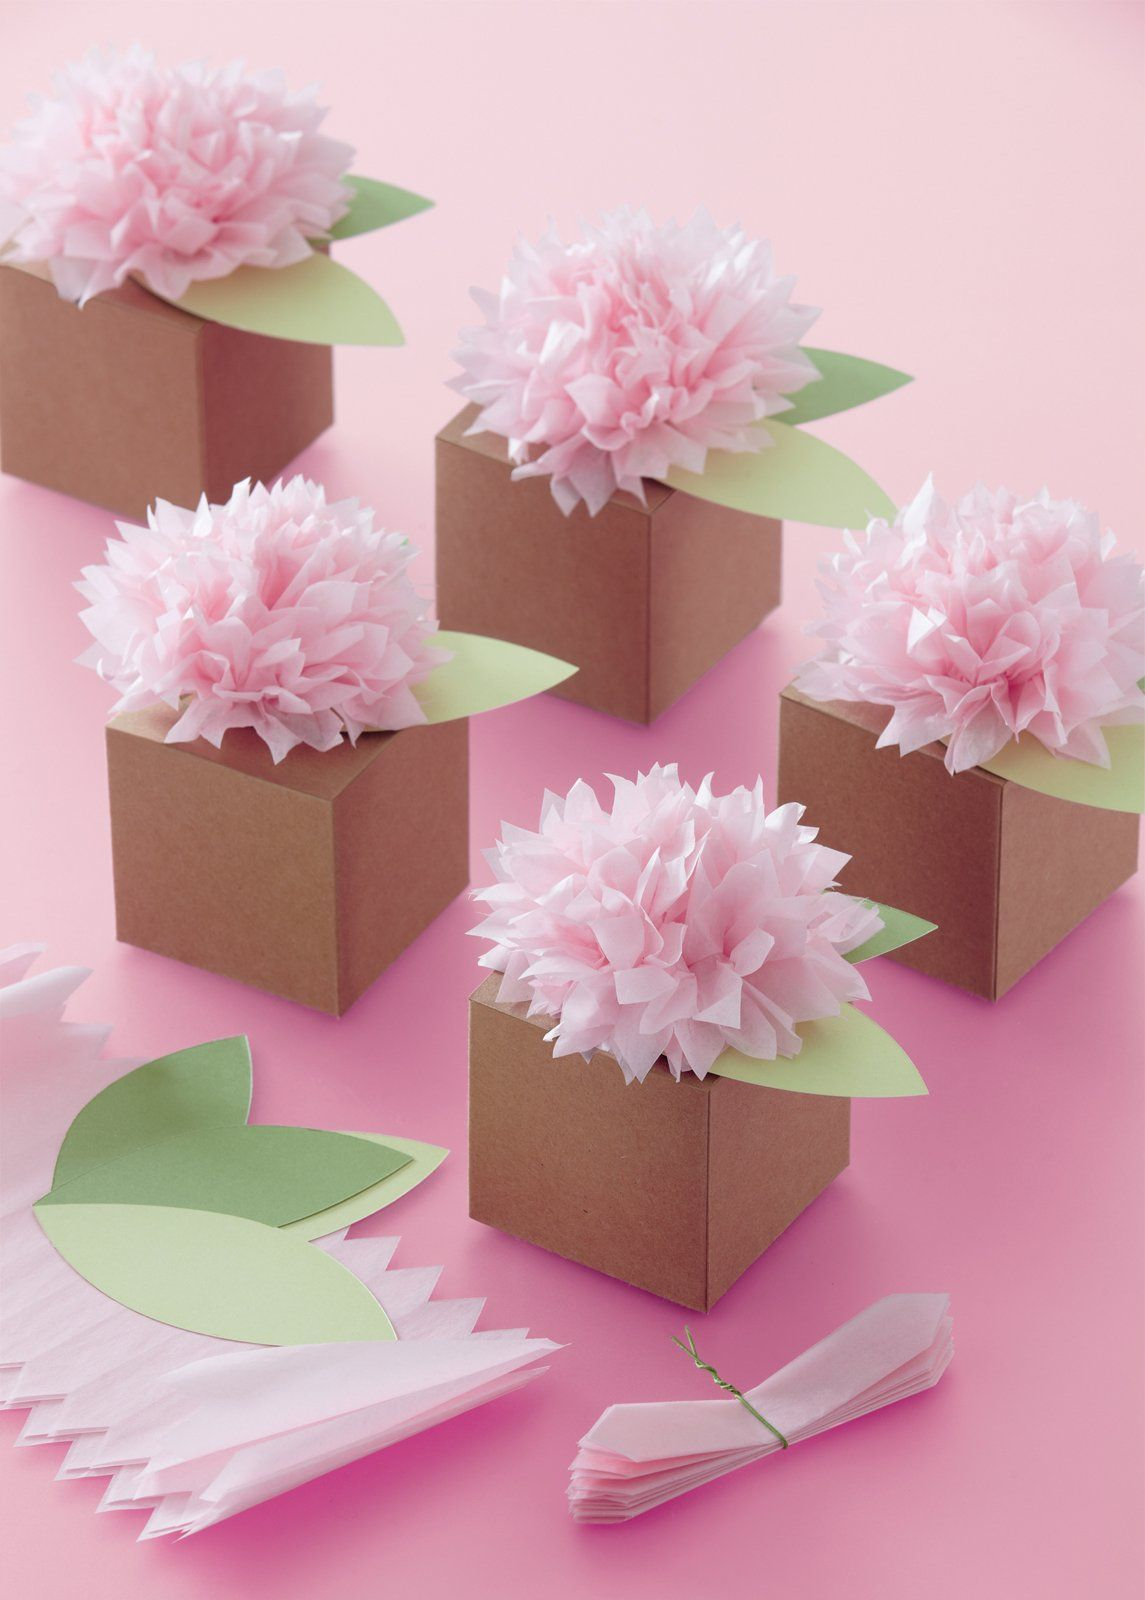 Party Favors Pom Pom Flowers Match Hanging Tissue Decor Makes 6